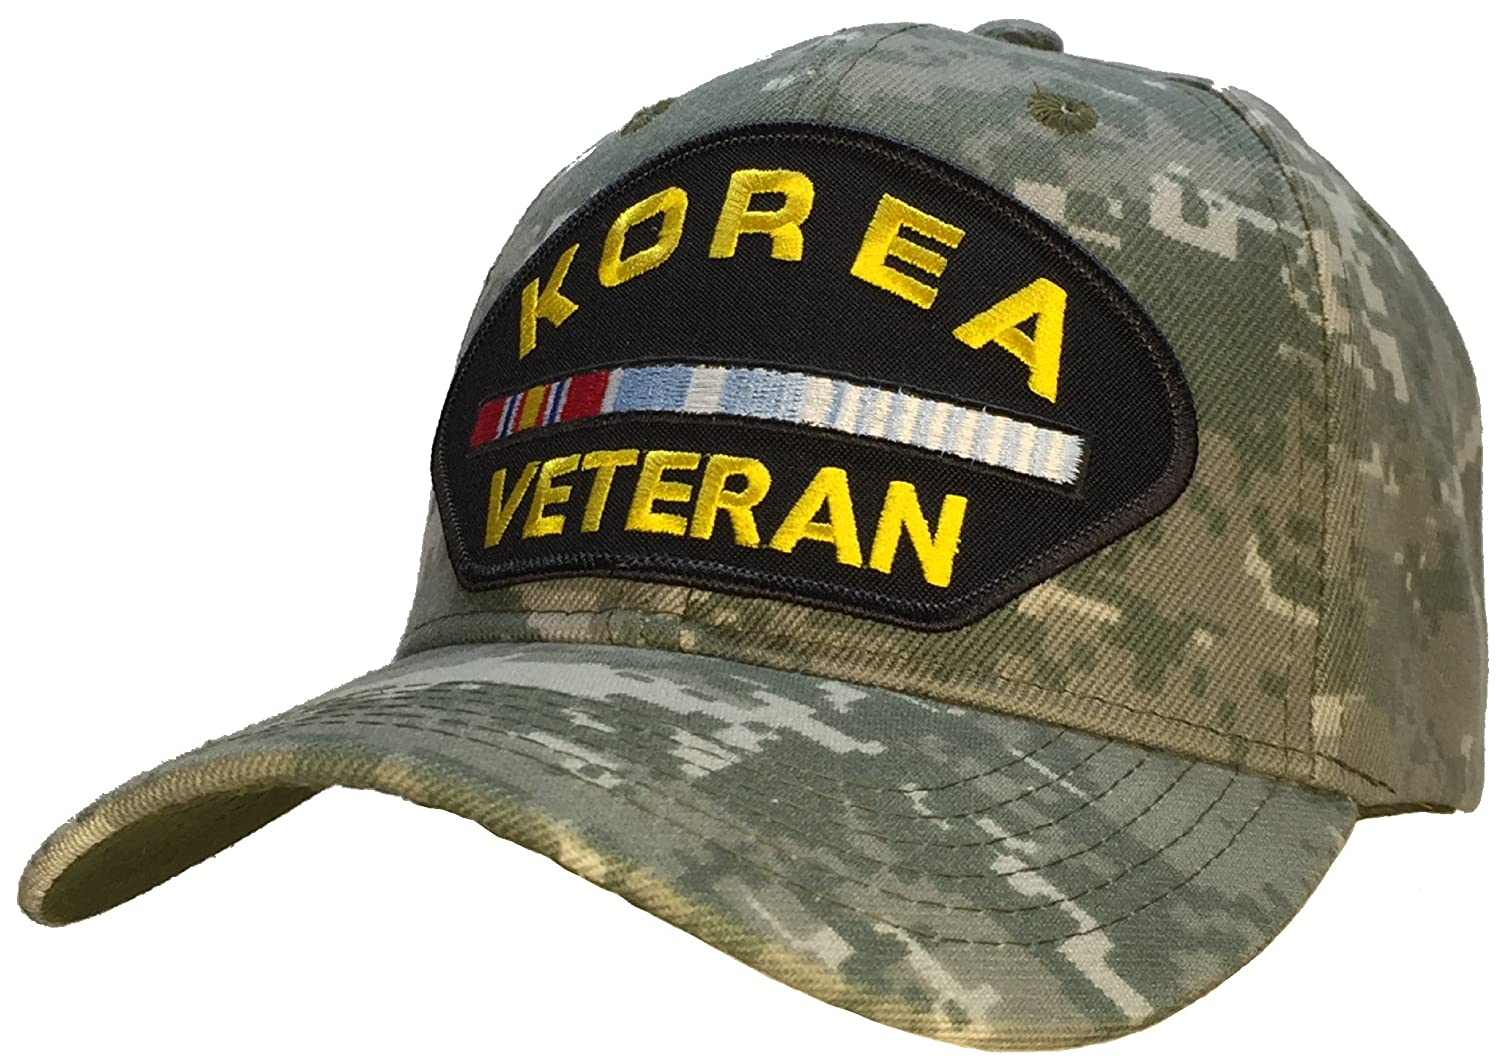 Amazon.com  Korean War Veteran Hat Digital Camo Ball Cap  Clothing 65cf5fa5e62